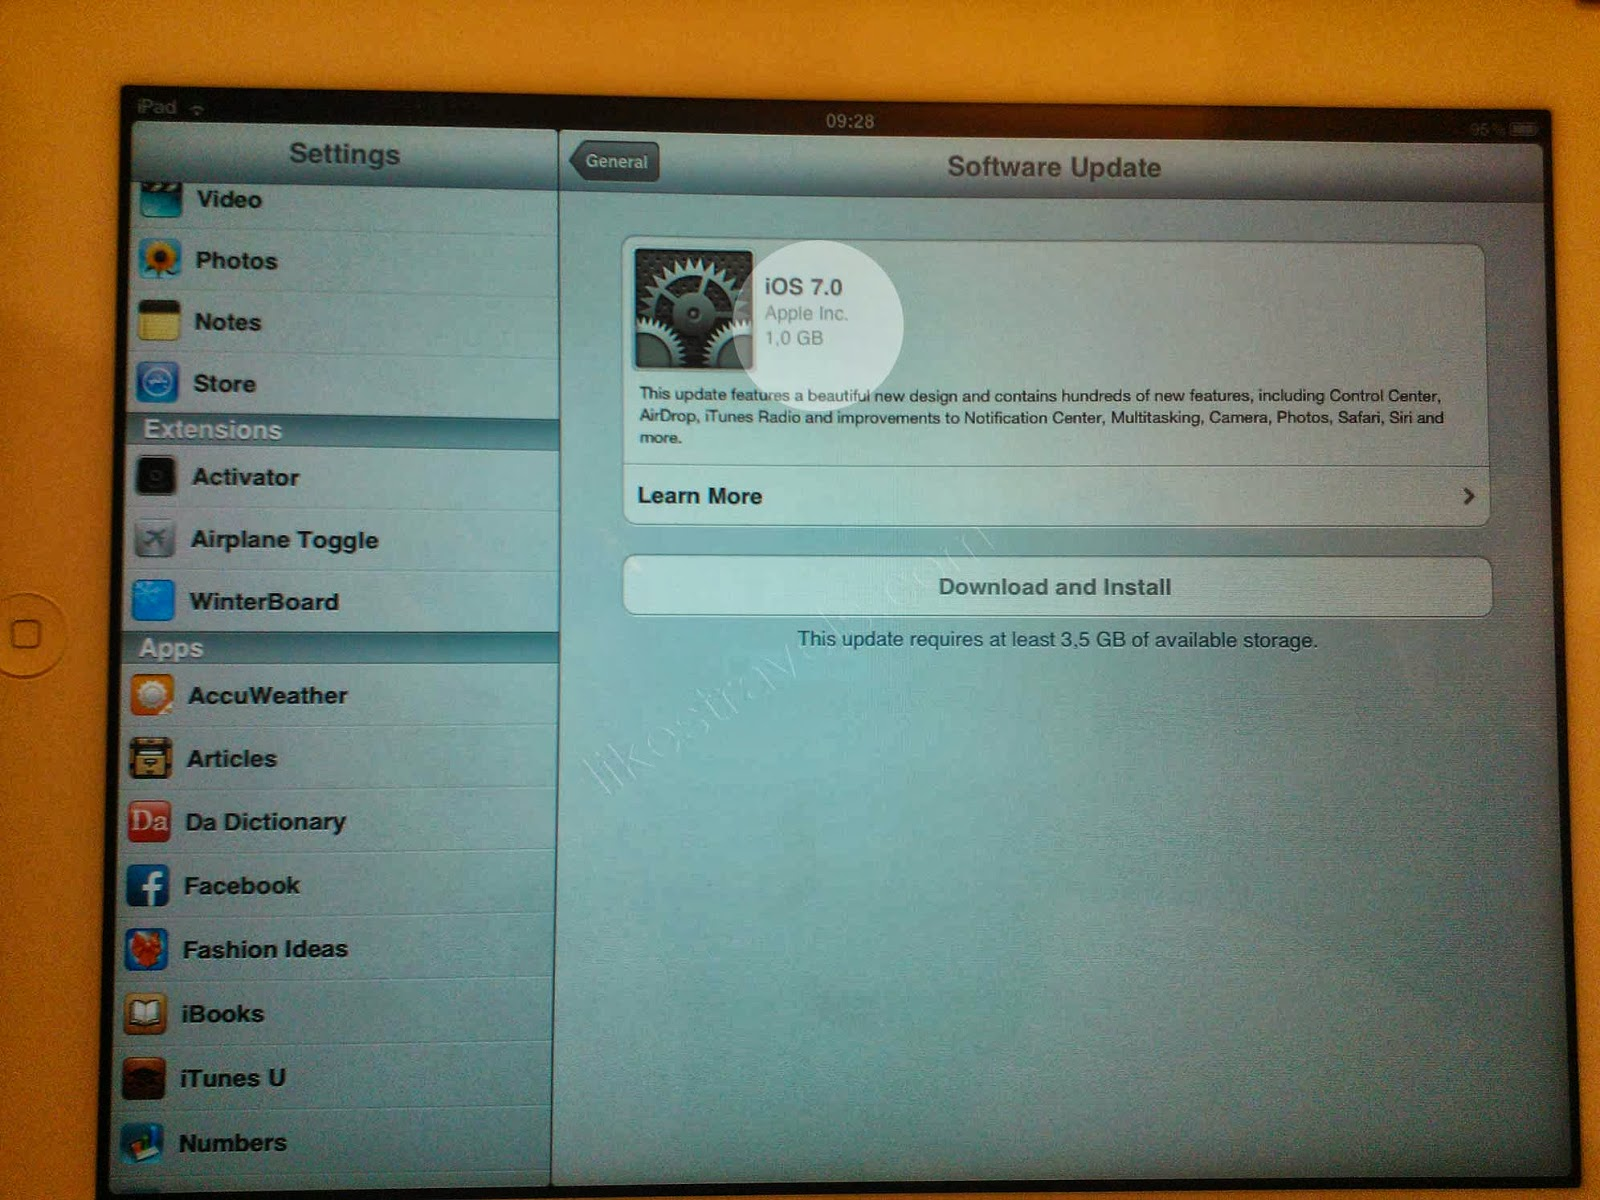 what is the latest ipad 2 software version